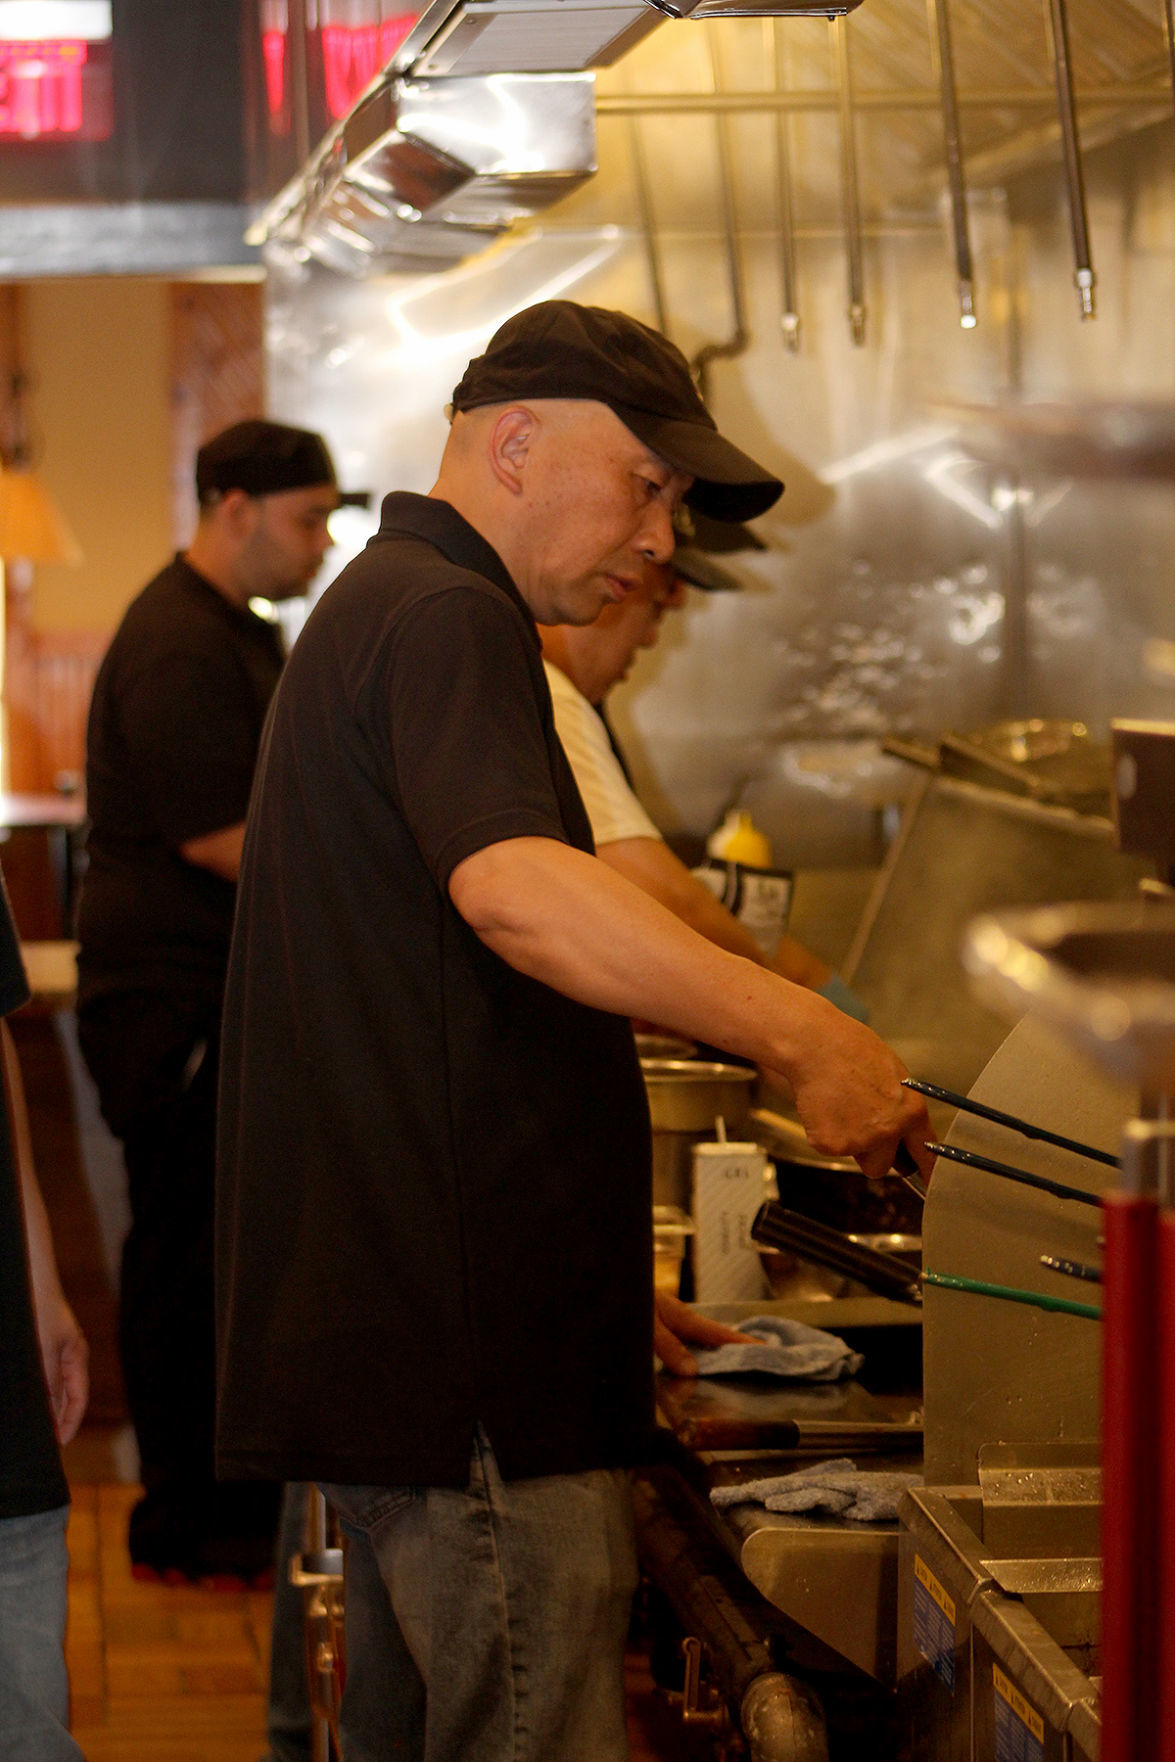 Fusion Buffet owner looks forward to new endeavor in Sandy Twp